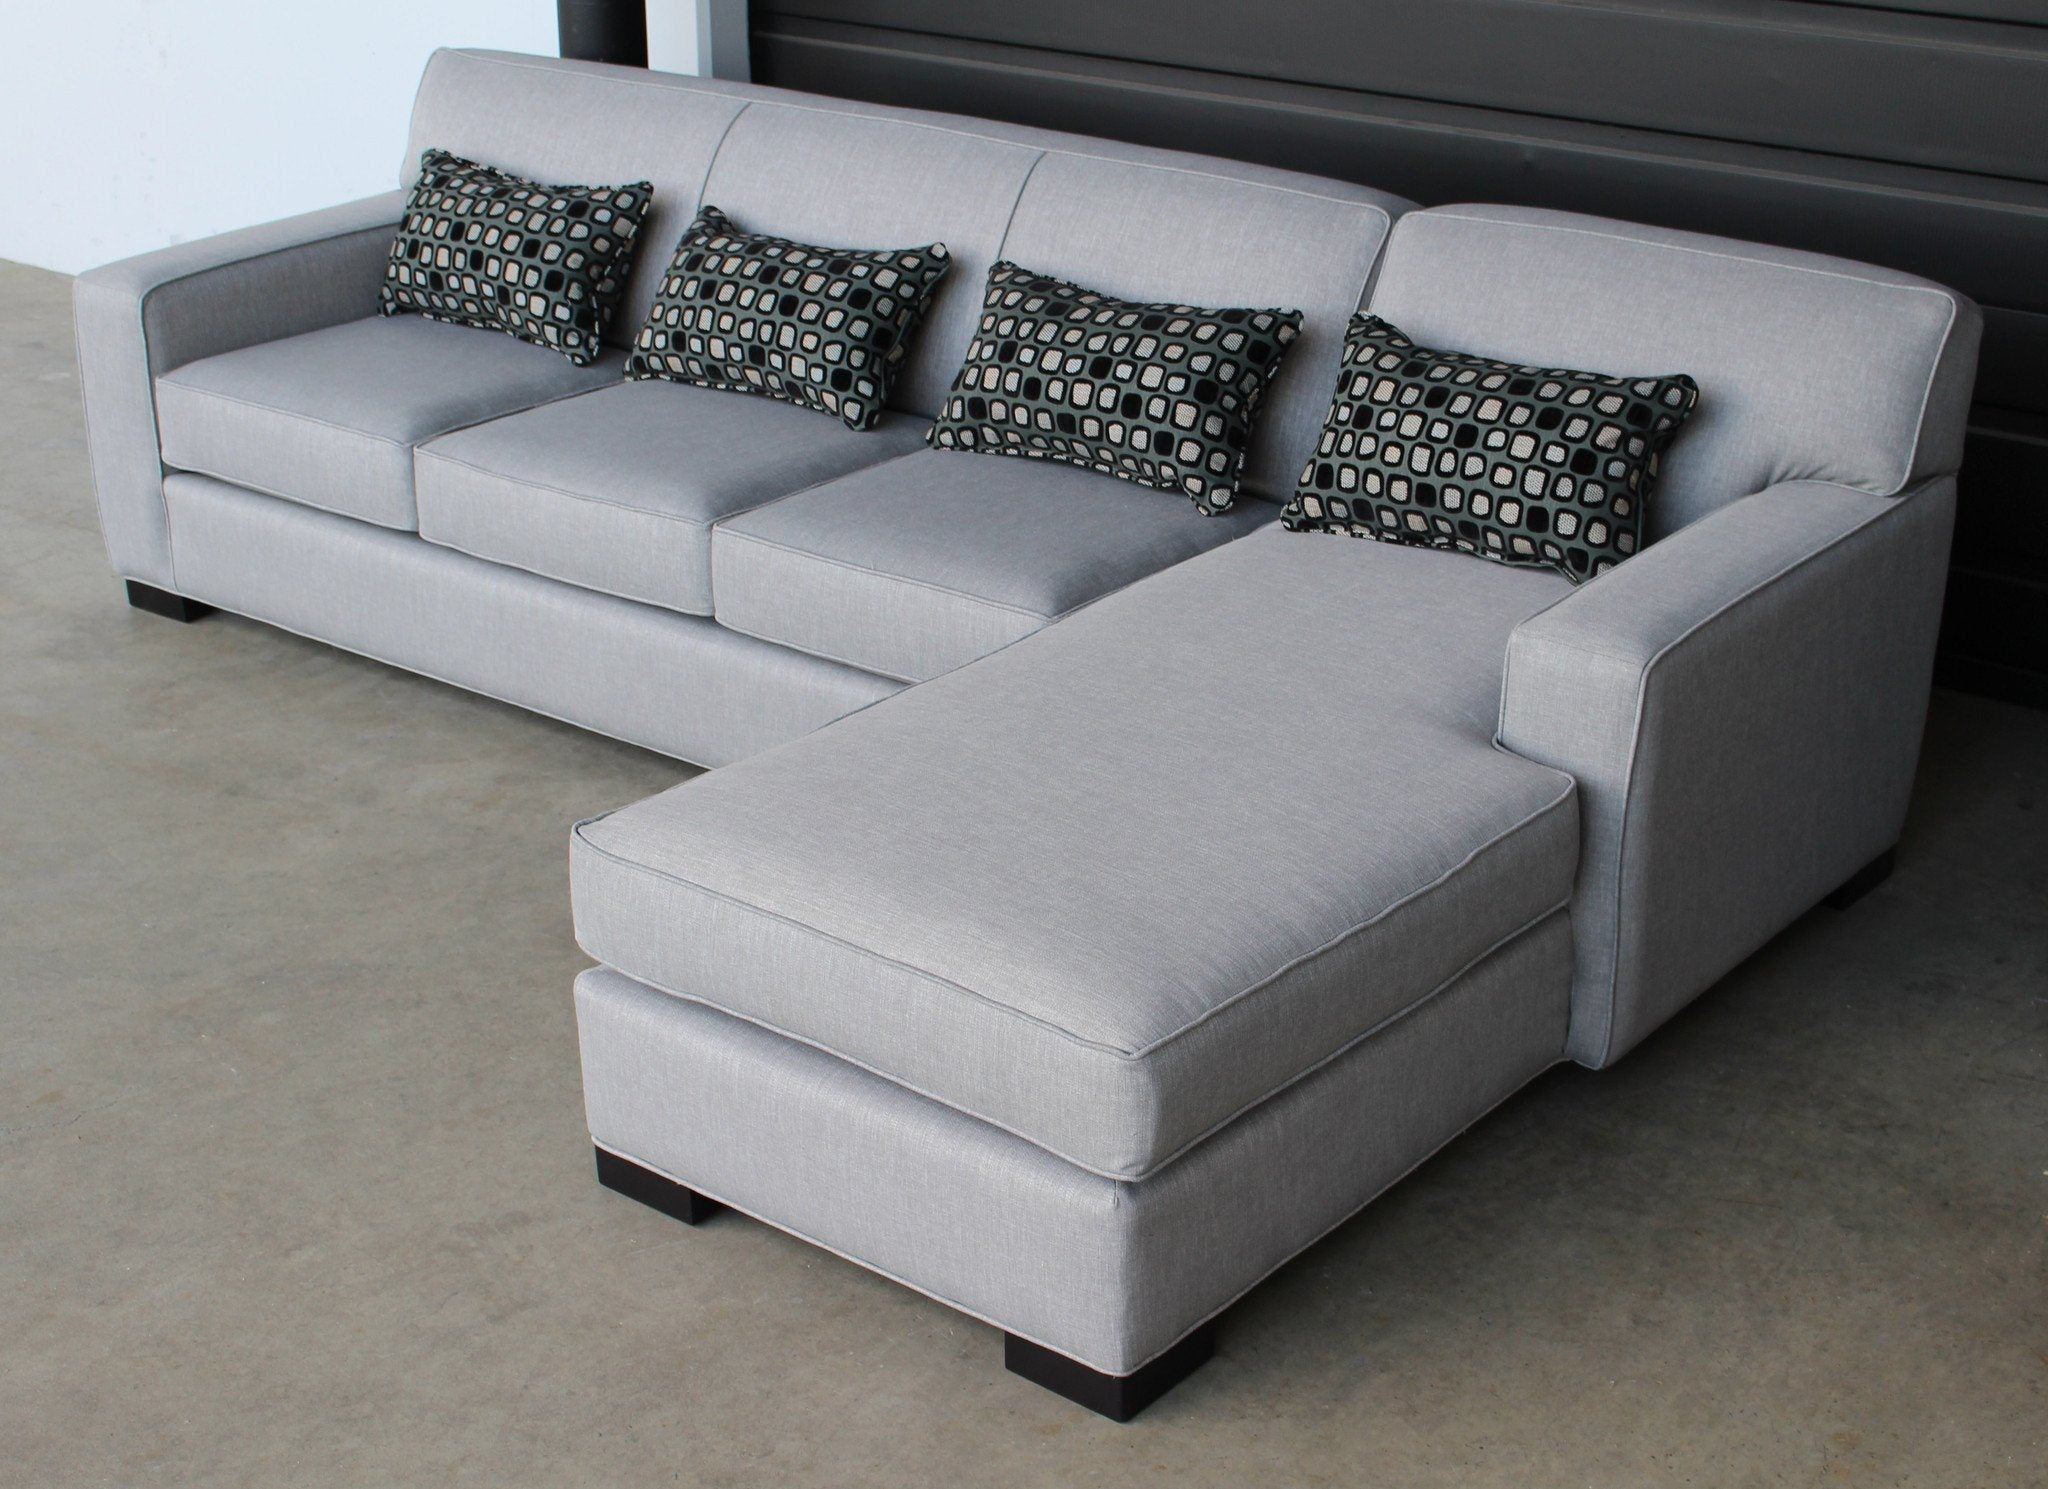 Arsenio Sofa Chaise Sectional - Made in Canada - Showhome Furniture